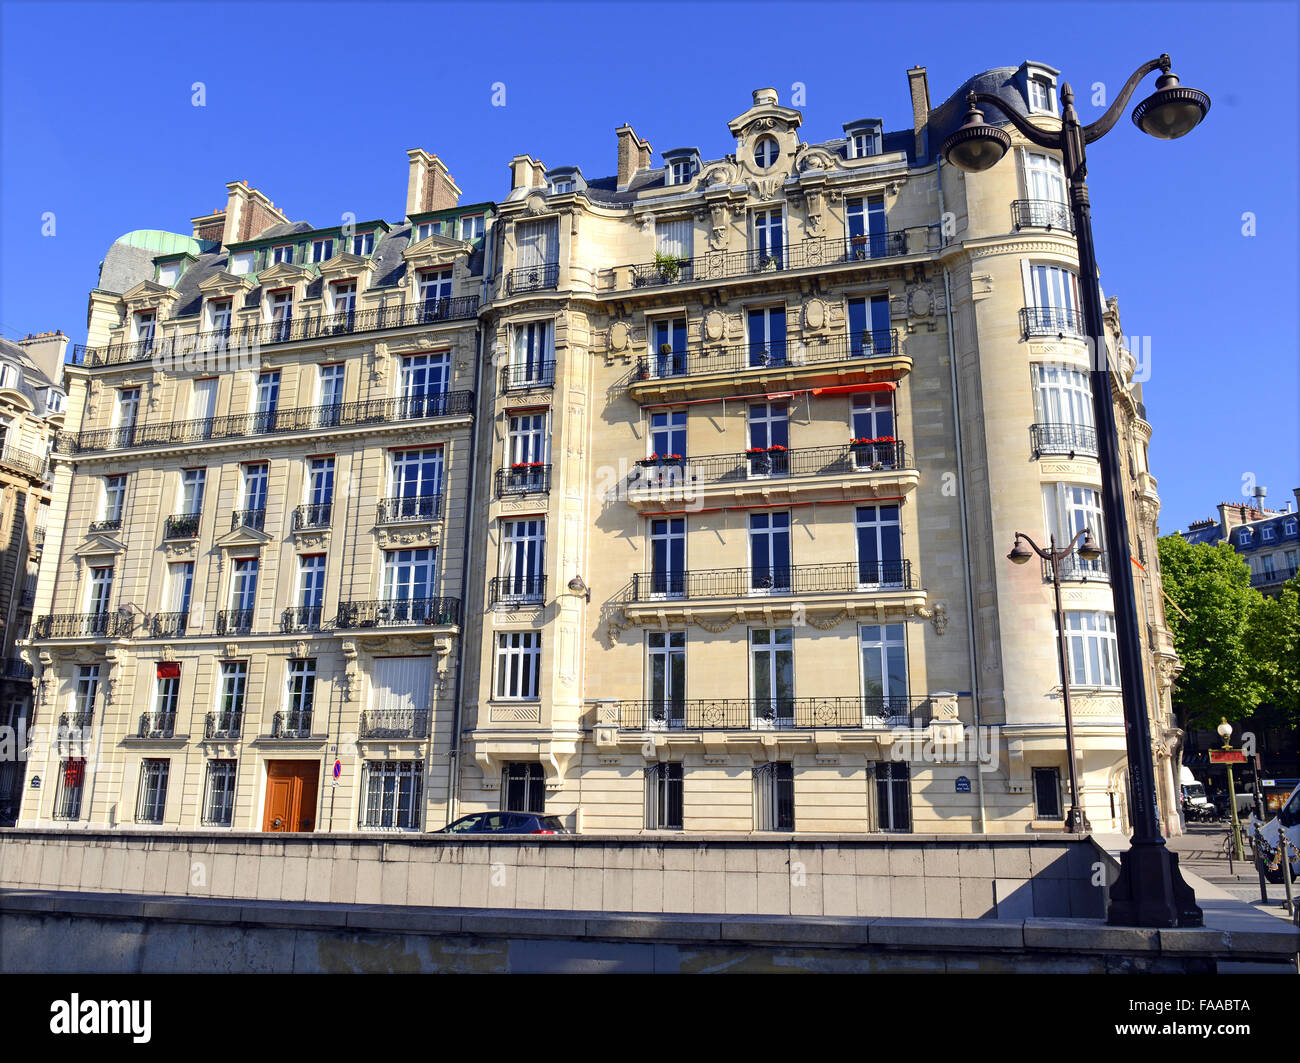 brick building facade in paris france stock photo royalty free image 92427226 alamy. Black Bedroom Furniture Sets. Home Design Ideas